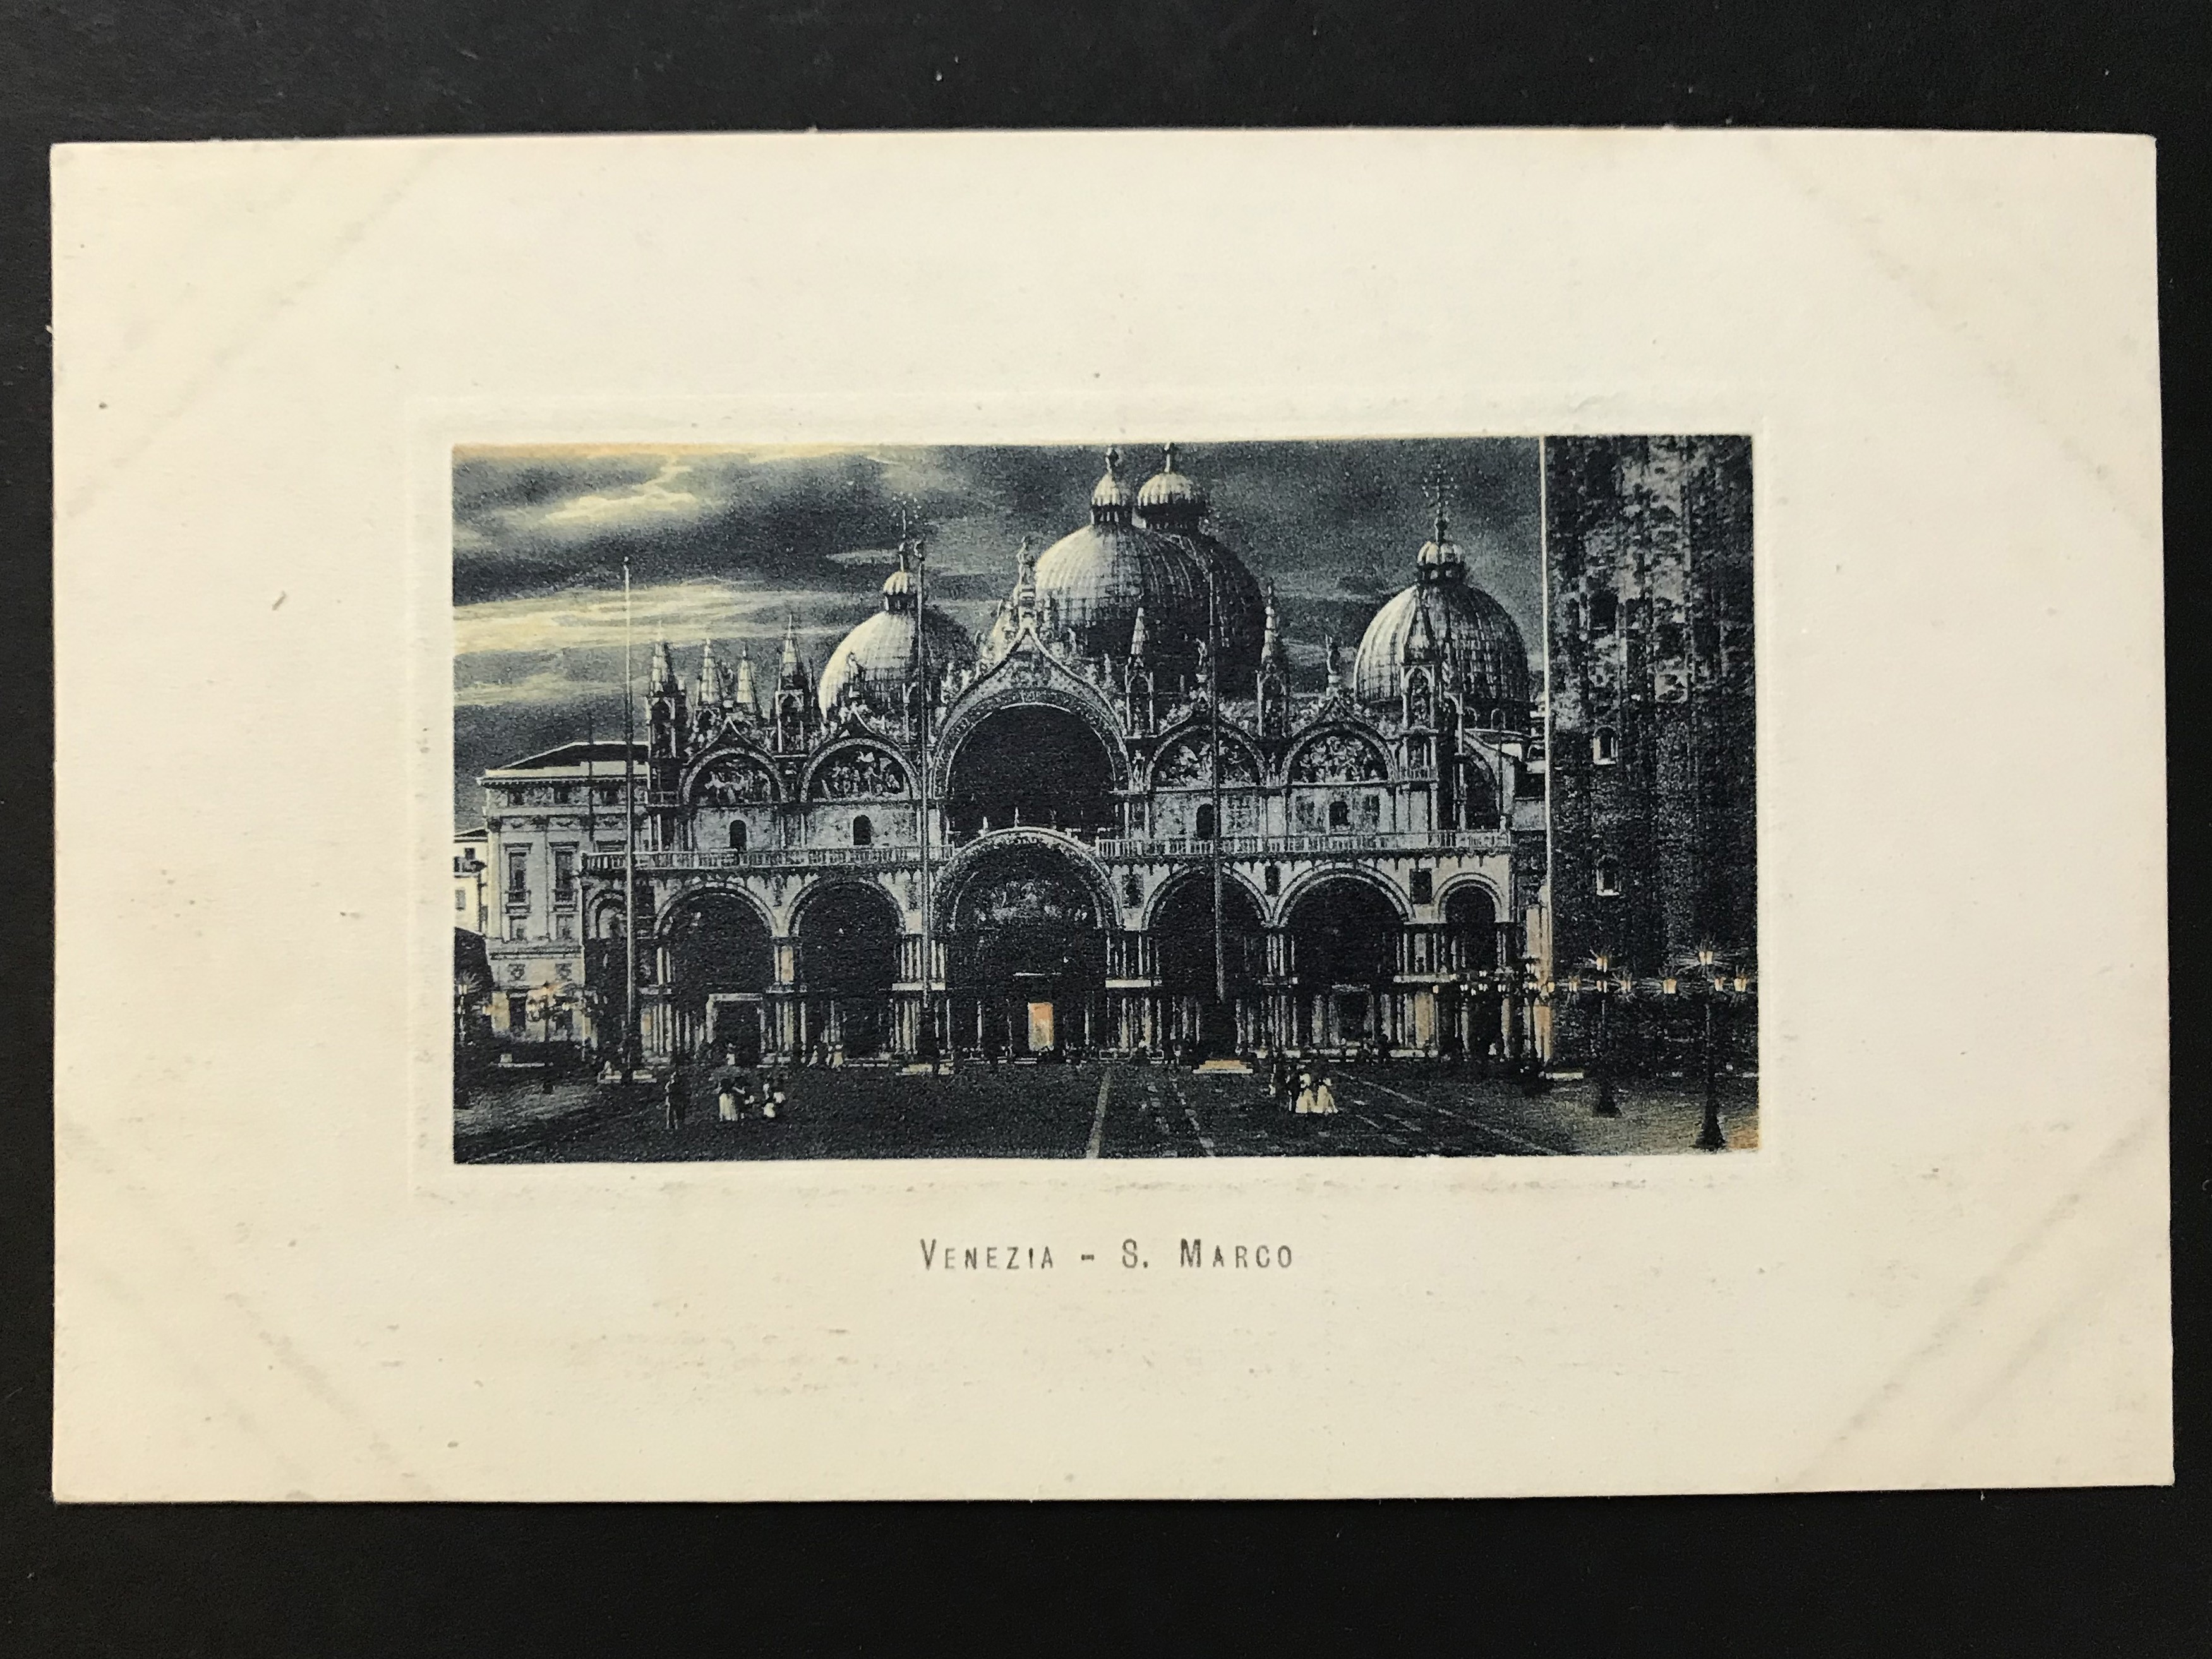 SELECTION OF VENICE RELATED POSTCARDS - Image 14 of 53